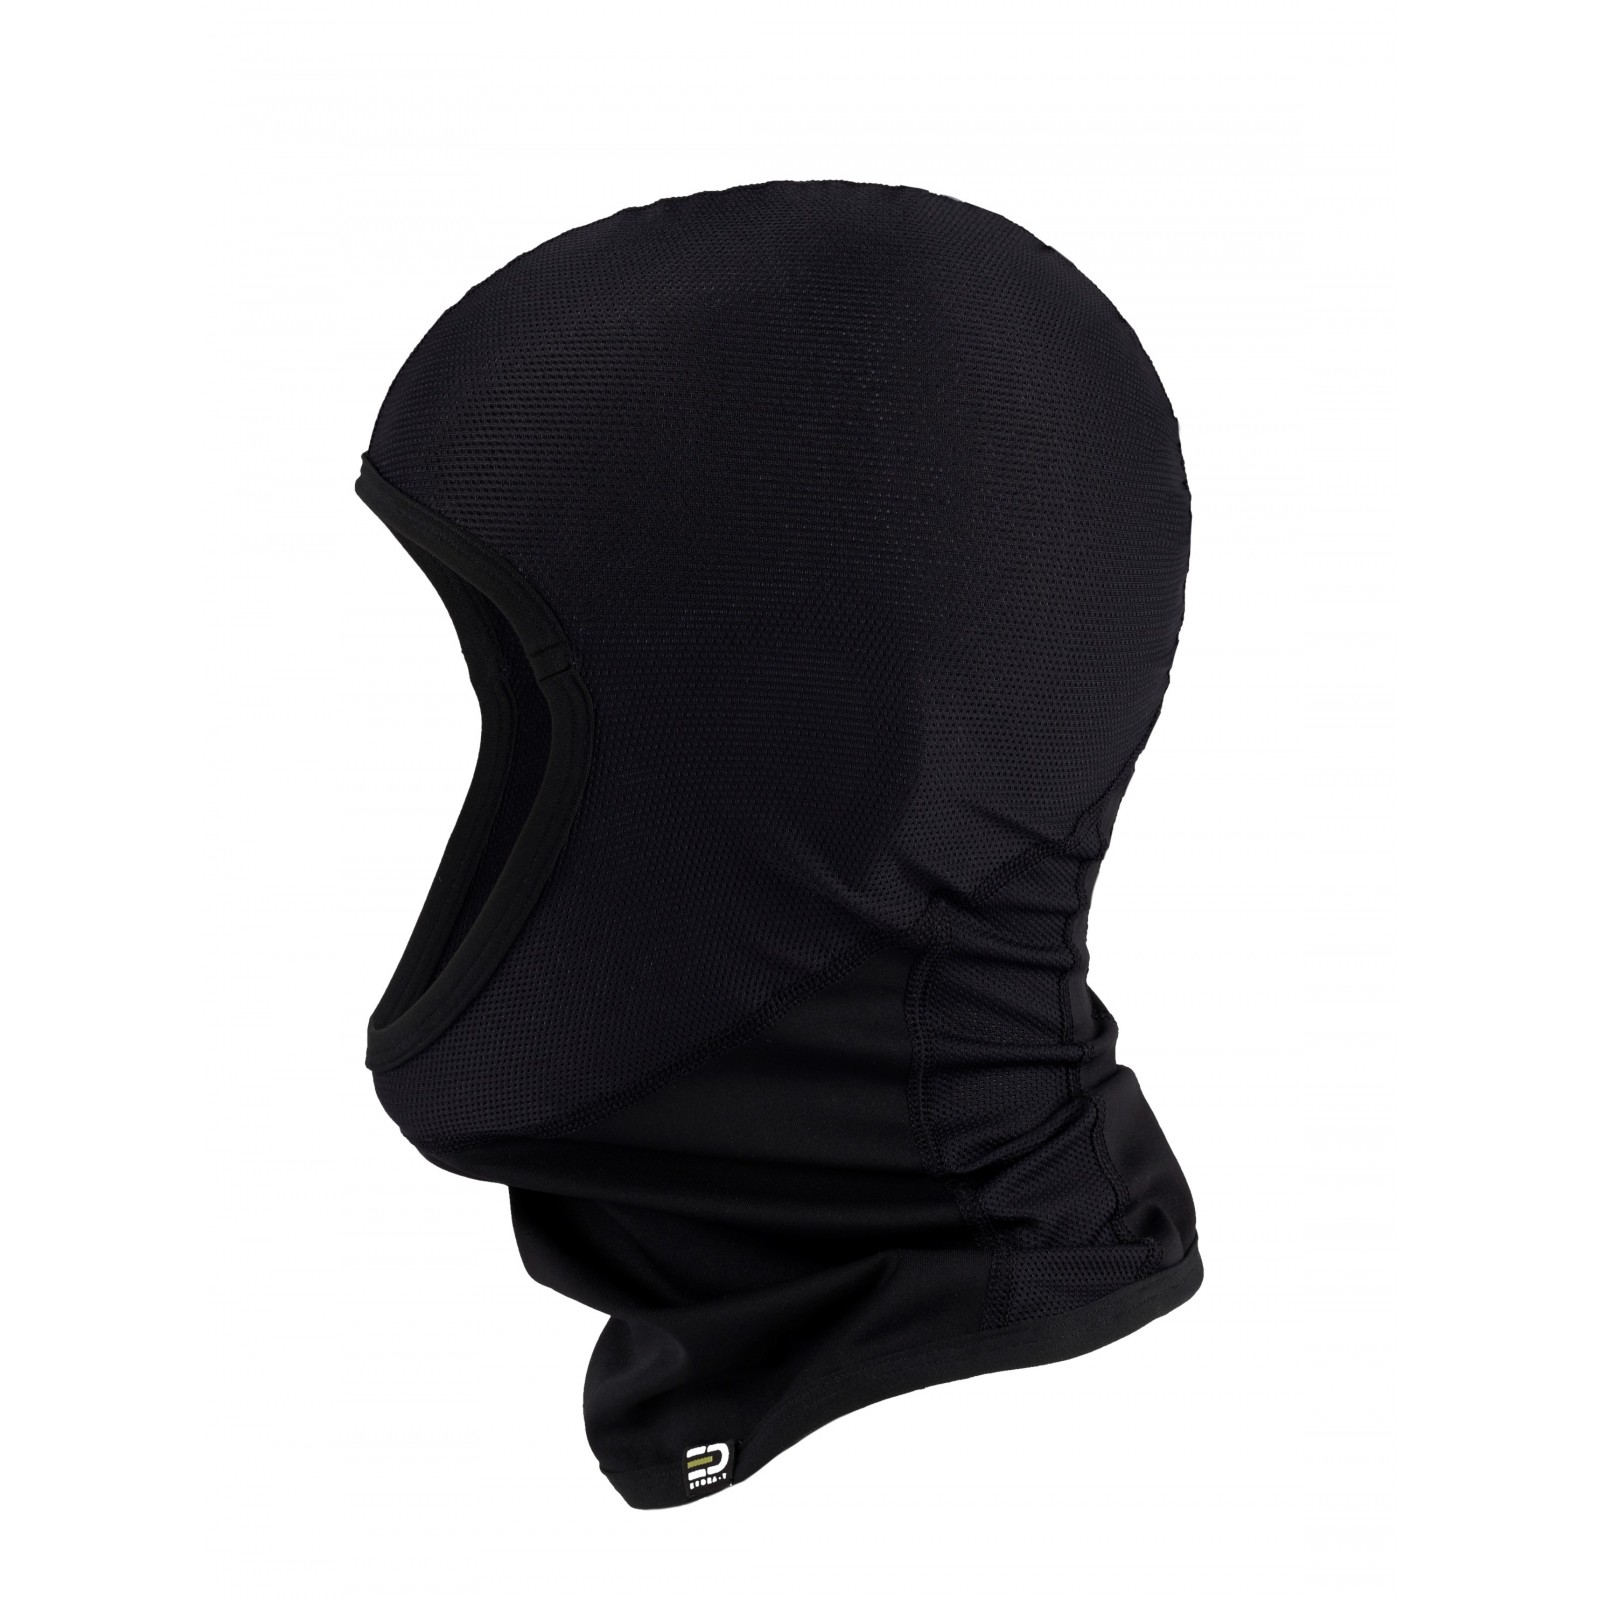 Helmet Liner/Balaclava Light Wind&Rain Proof Black